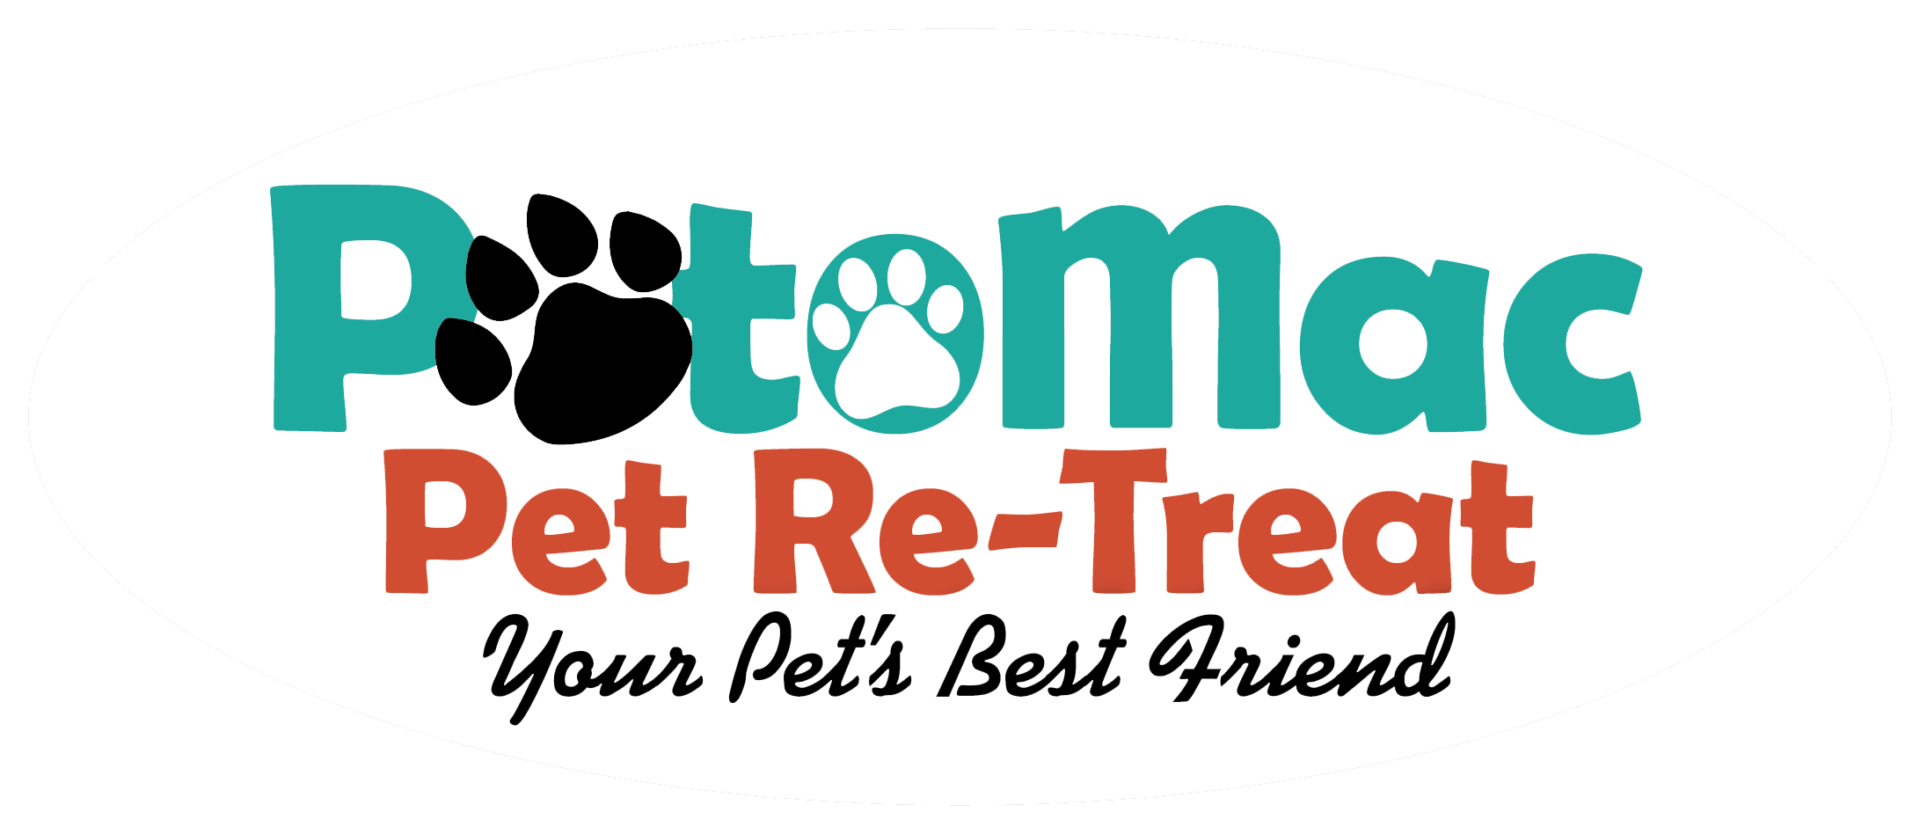 1425017b-d2ff-4bb8-8183-8d78a93e4d38New Potomac_pet retreat_LOGO copy